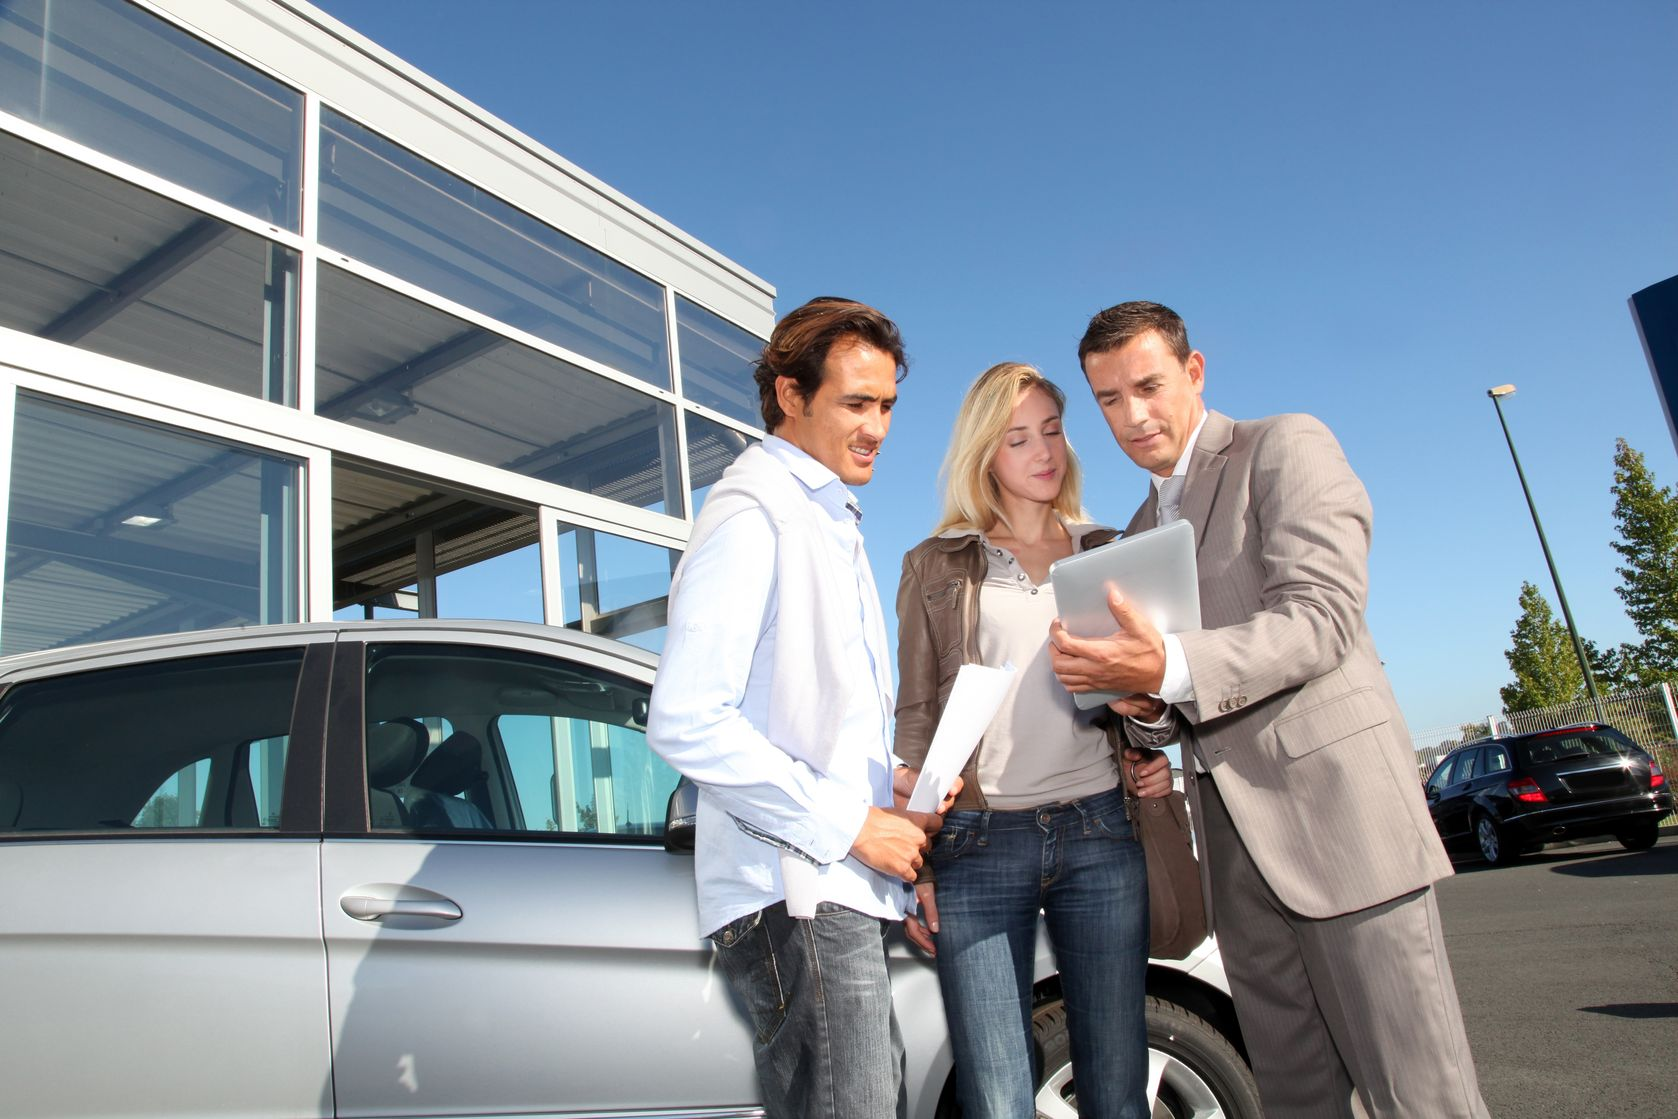 Baltimore Auto Dealers Insurance